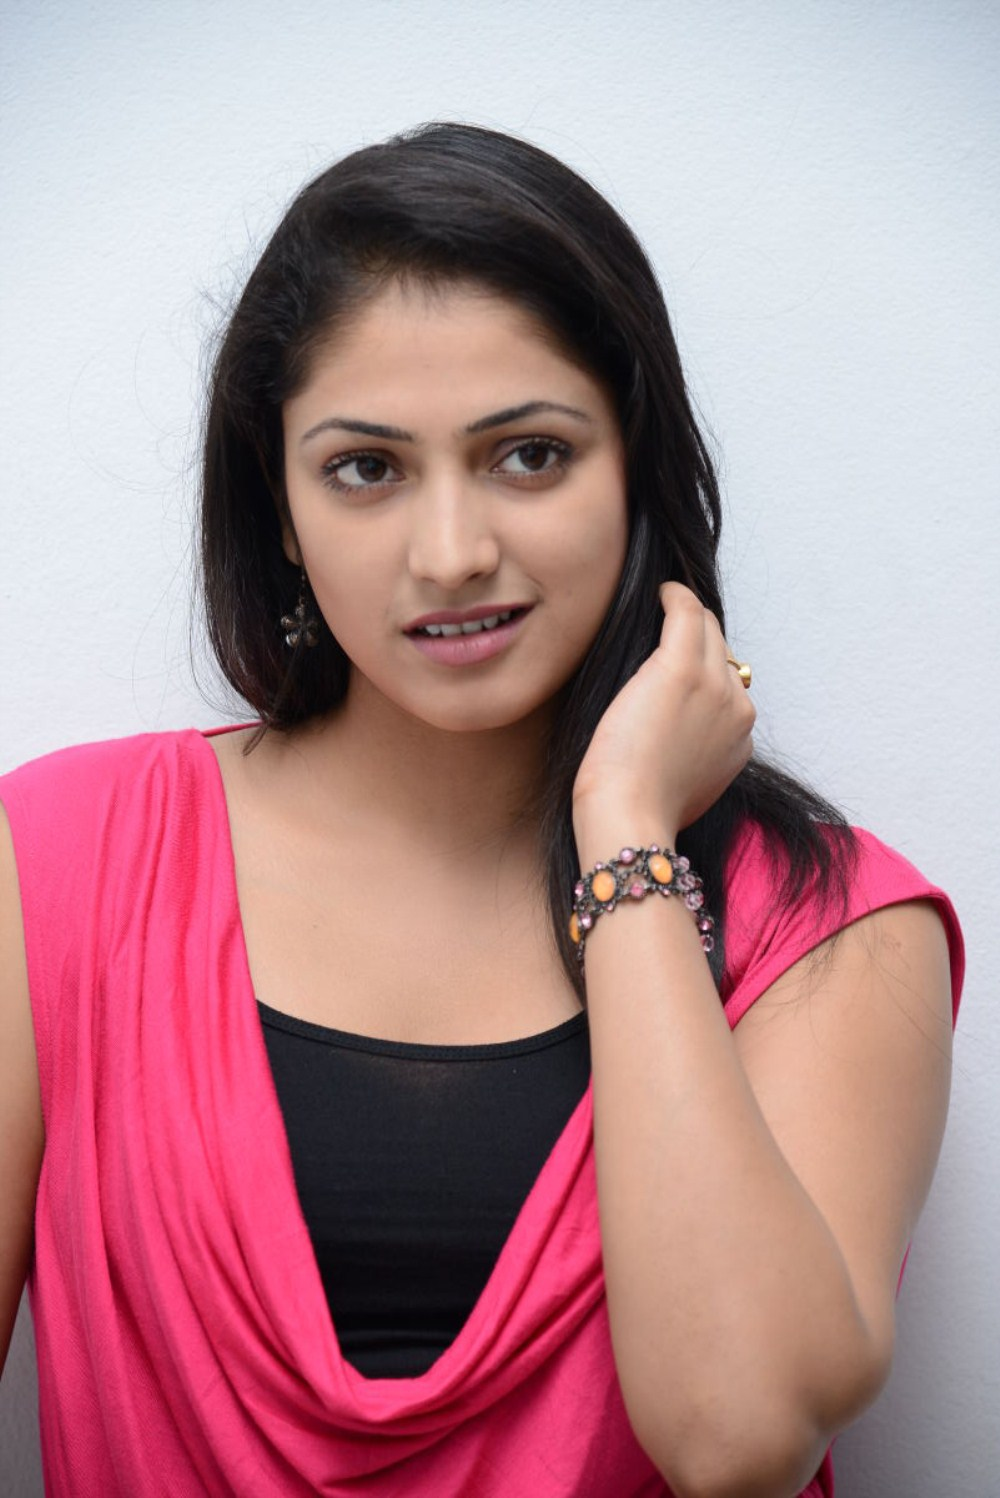 Hari Priya Latest Stills 25cineframes